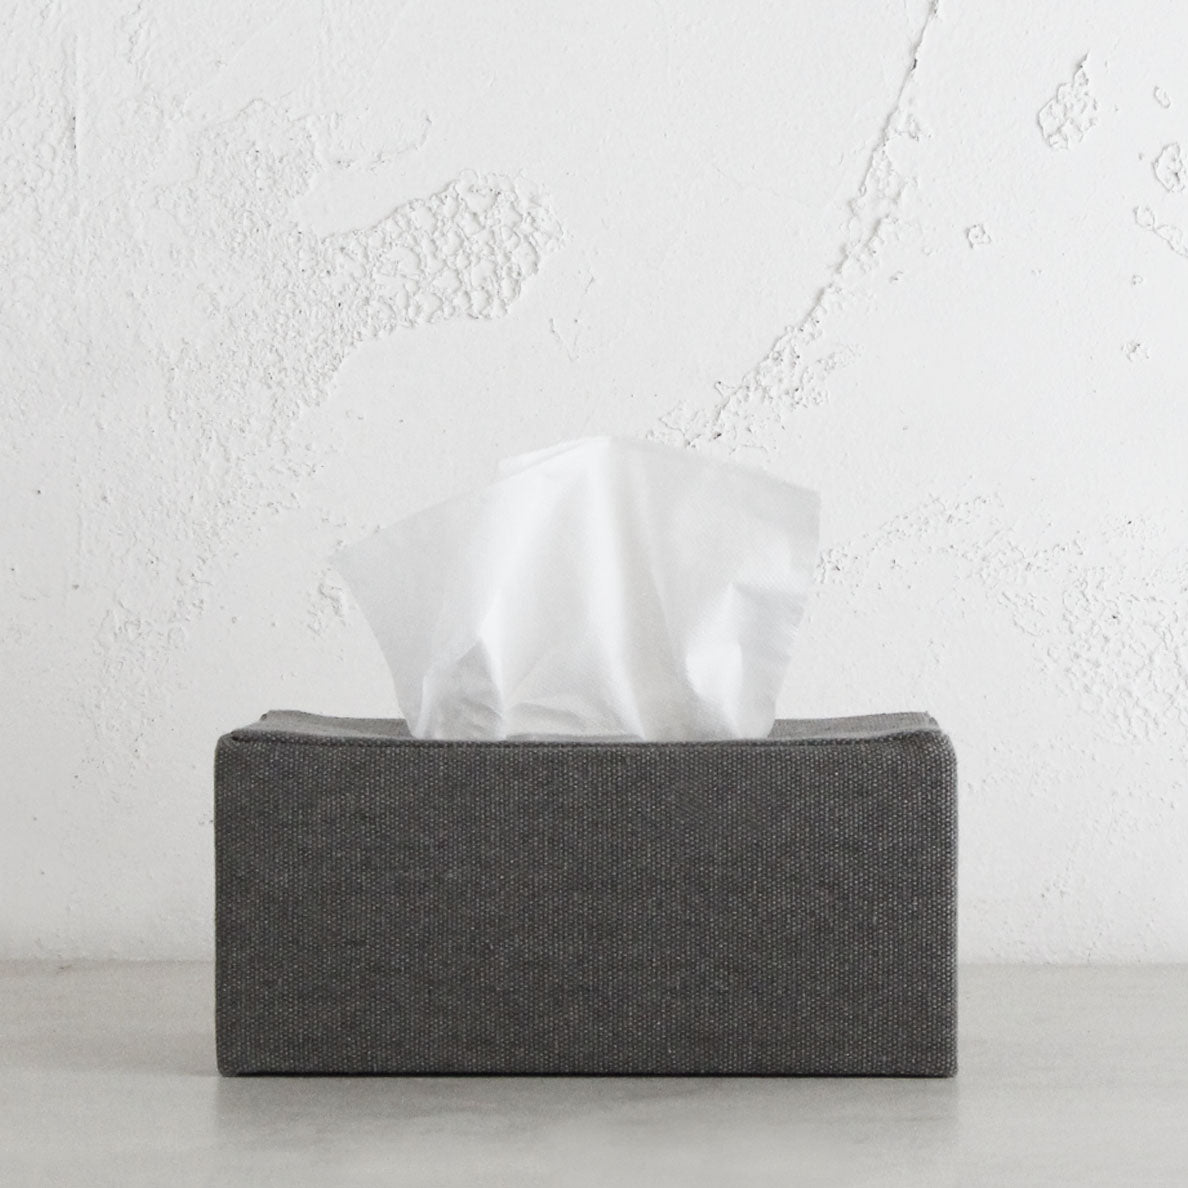 TELA CANVAS TISSUE BOX RECTANGULAR  |  GREY LINEN CANVAS